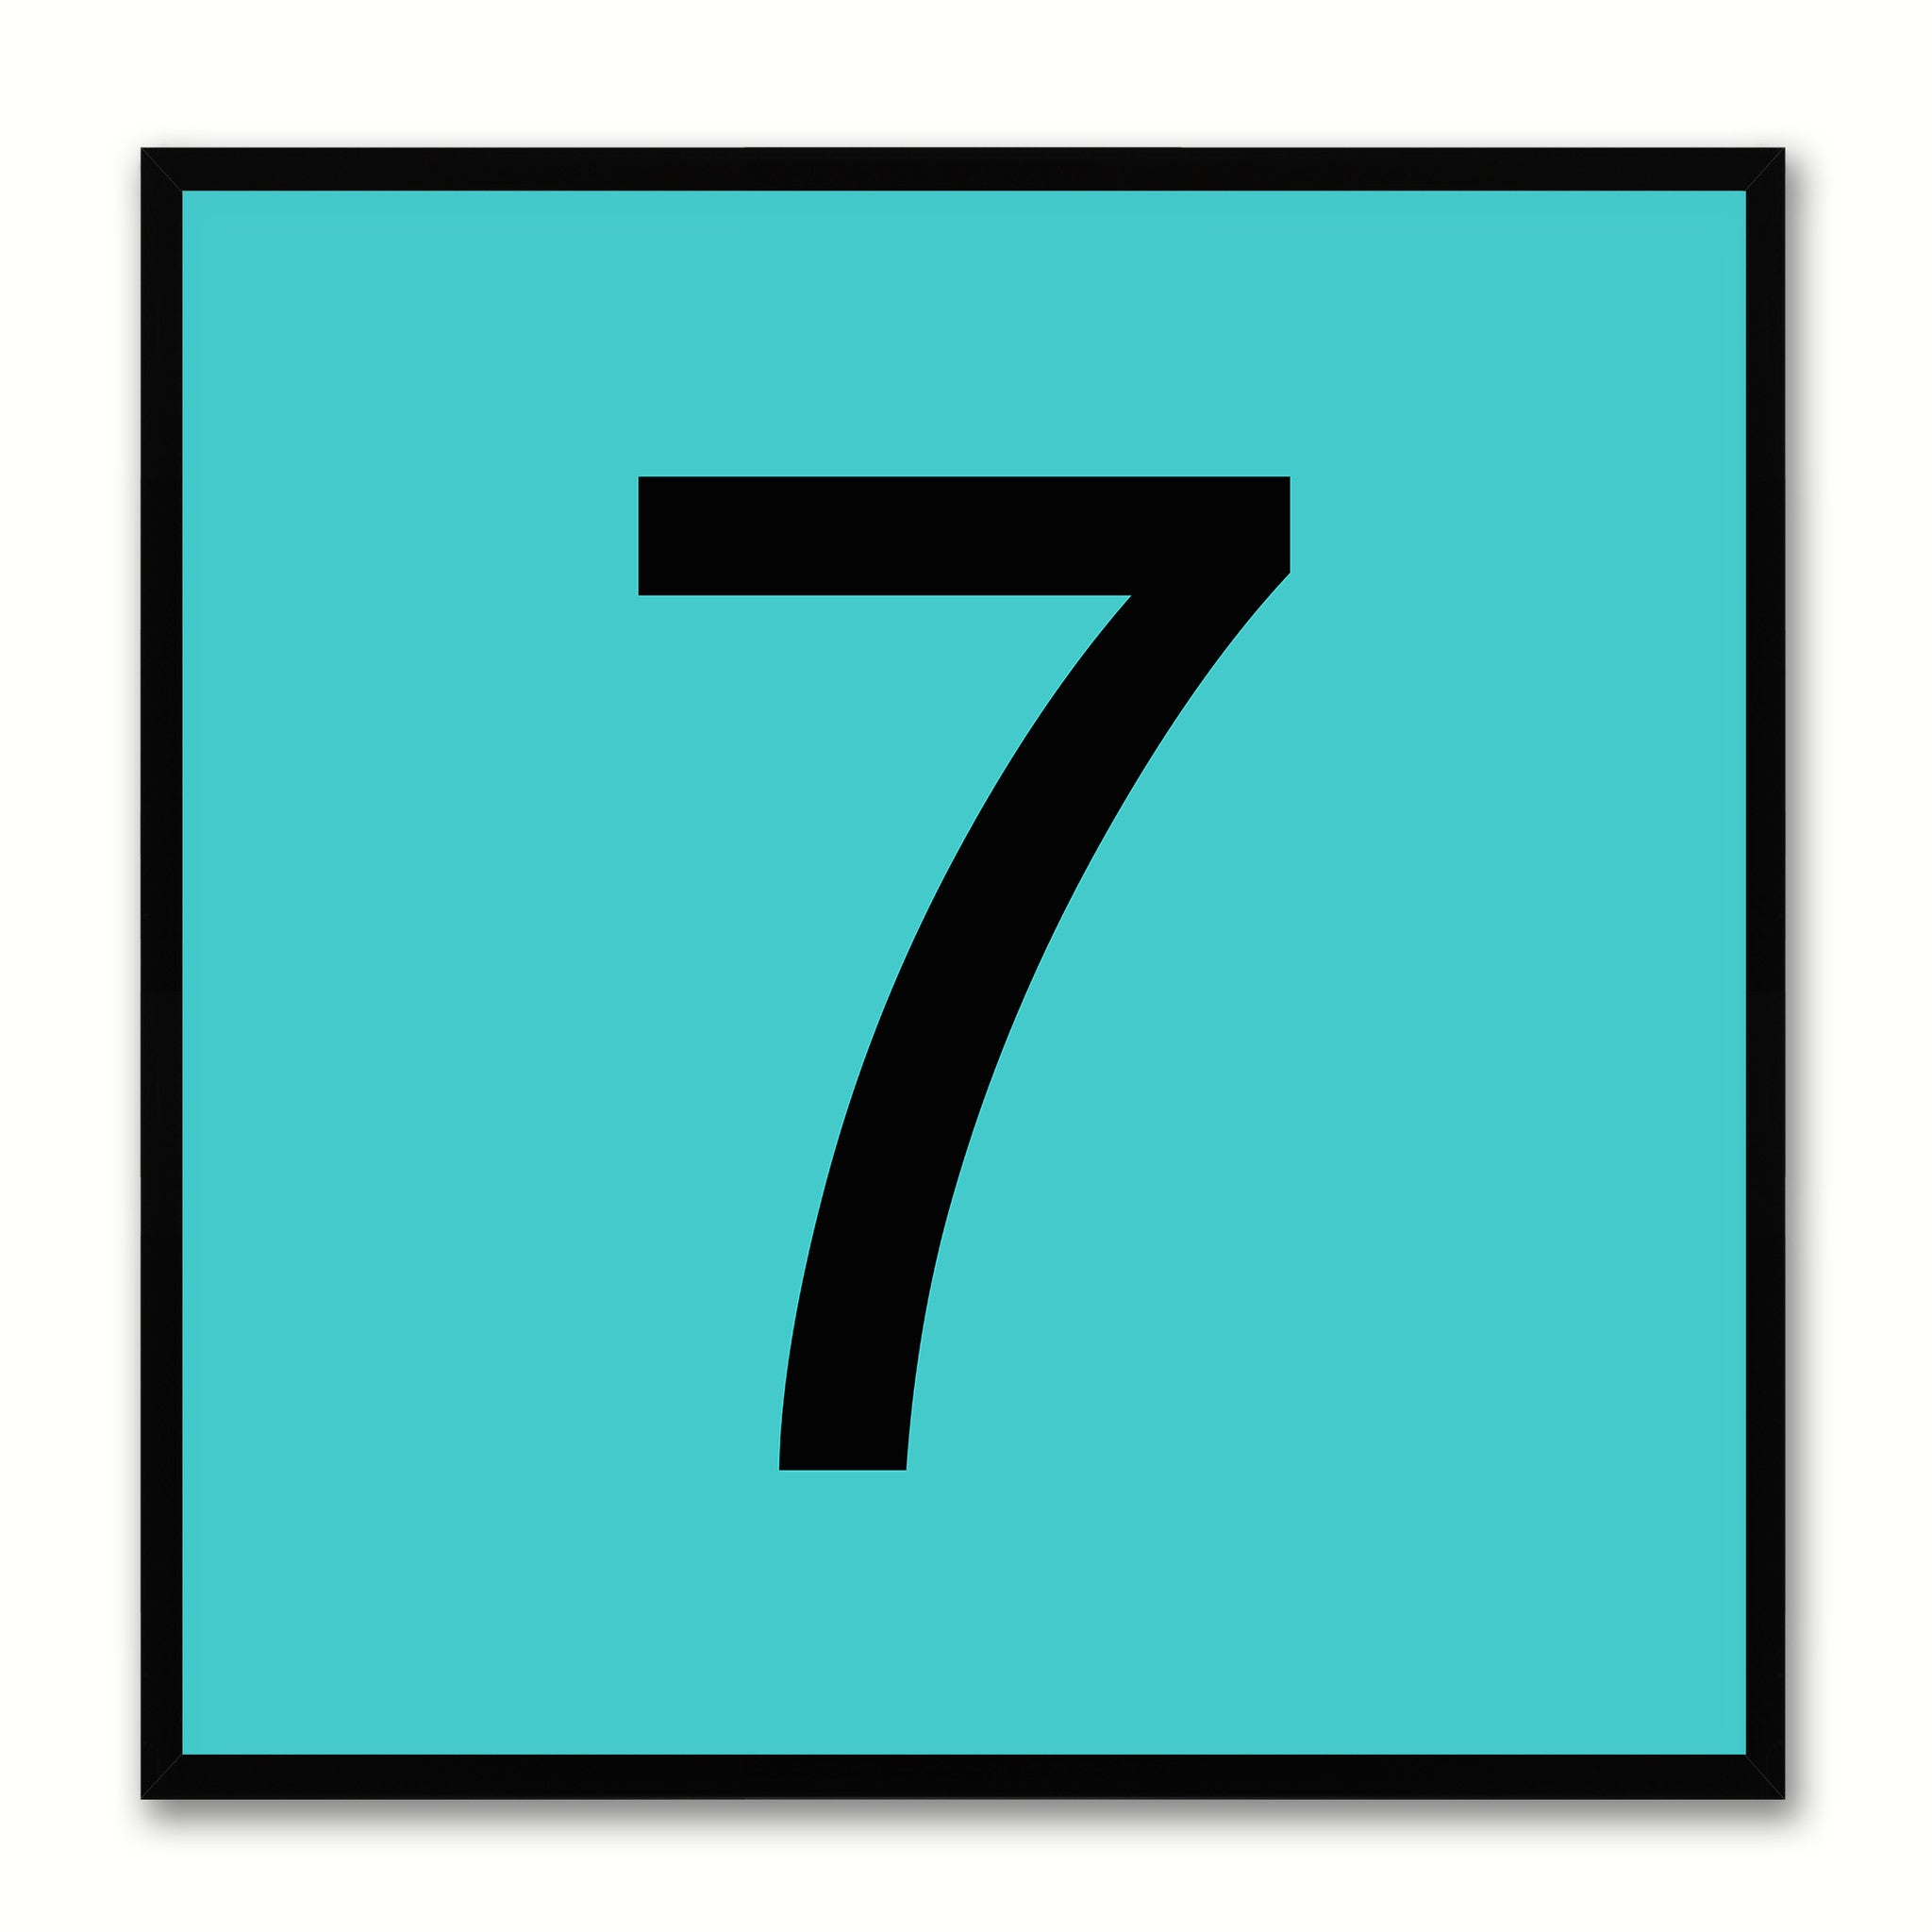 Number 7 Aqua Canvas Print Black Frame Kids Bedroom Wall Décor Home Art